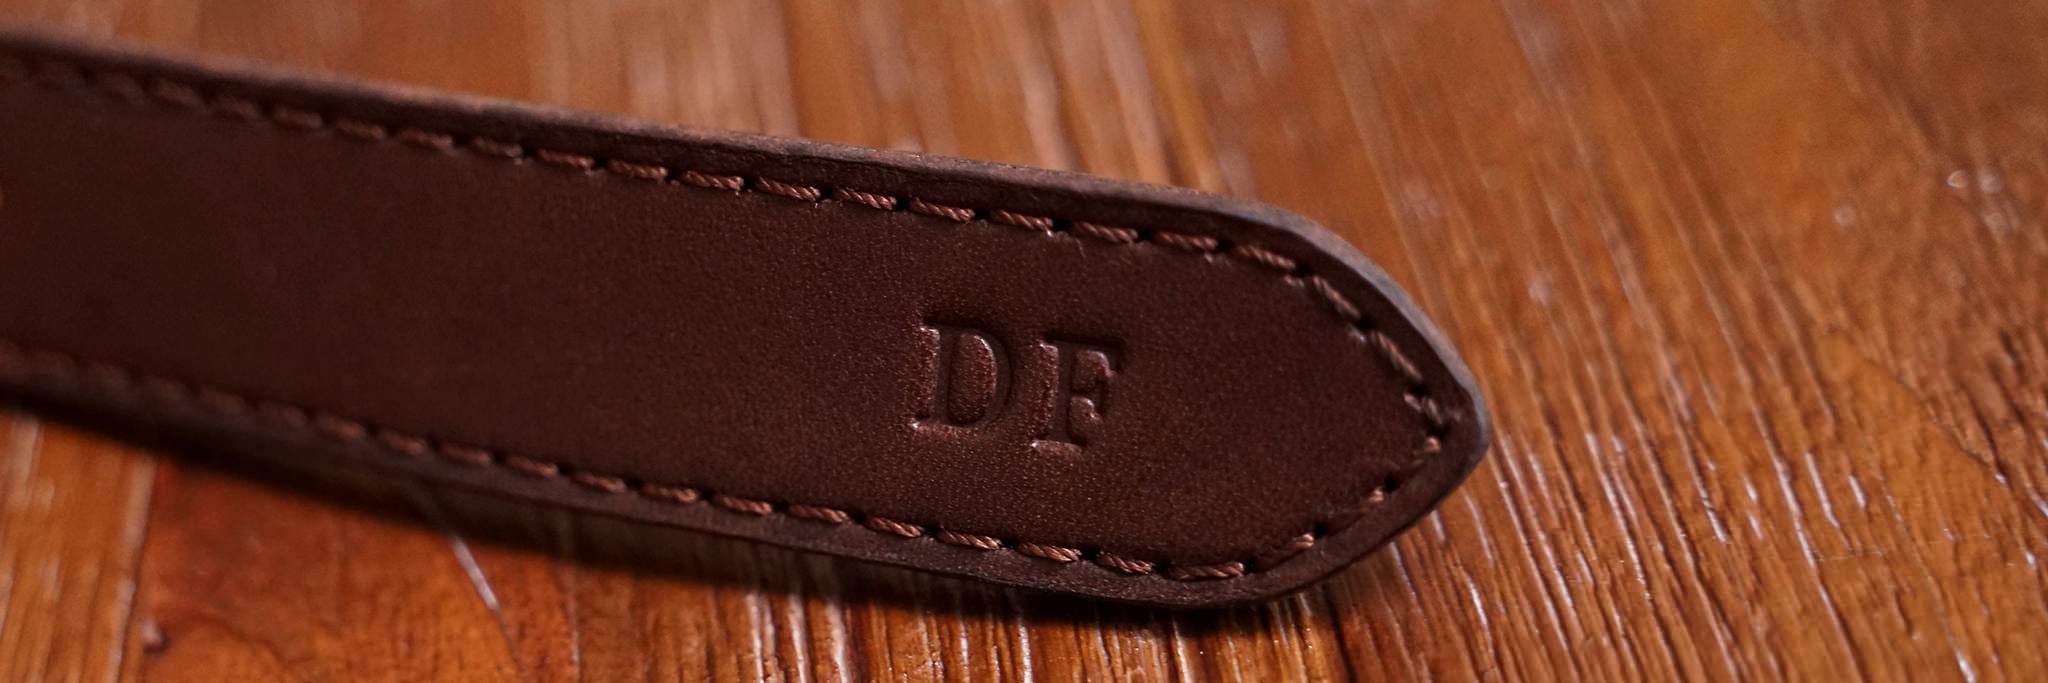 Initials example, shown here on a Fox colored belt with Satyr/Serif font.